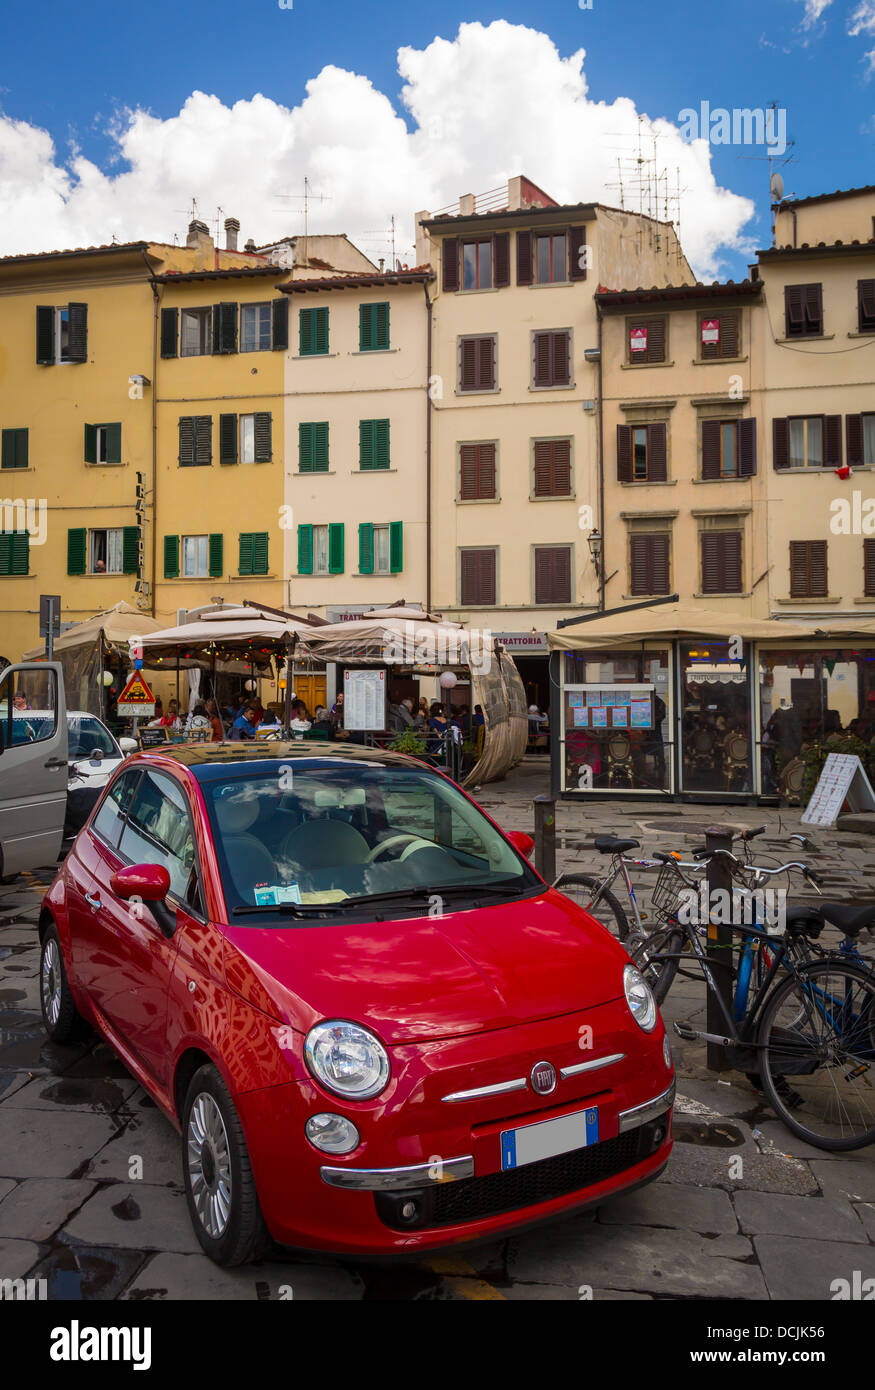 Fiat car parked in Piazza del Mercado Centrale in Florence, Italy - Stock Image